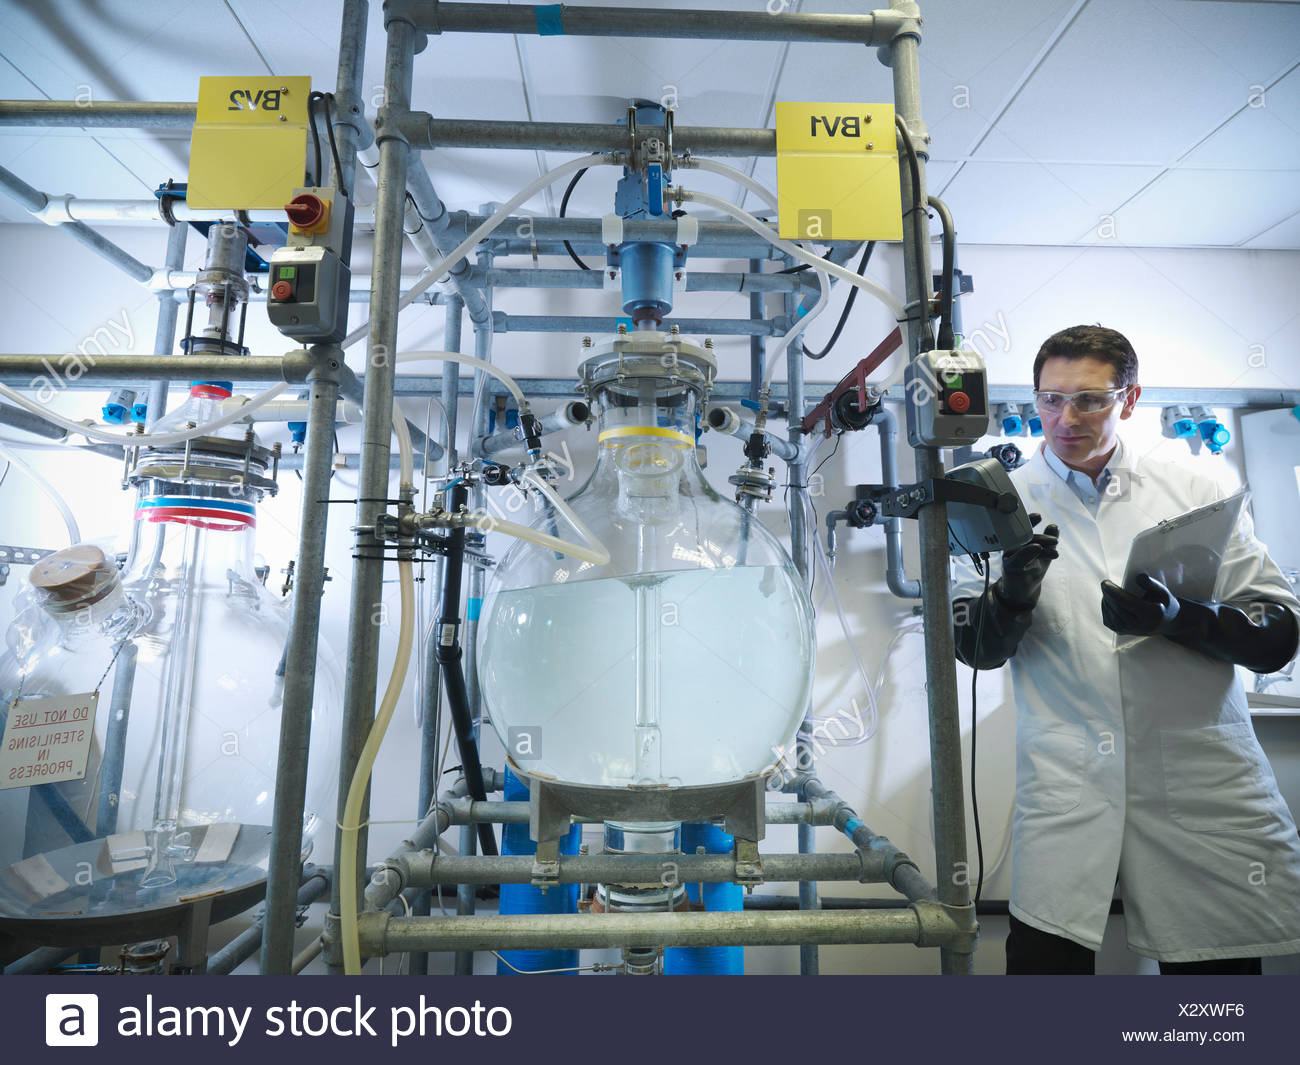 Scientist with laboratory mixing vessels - Stock Image